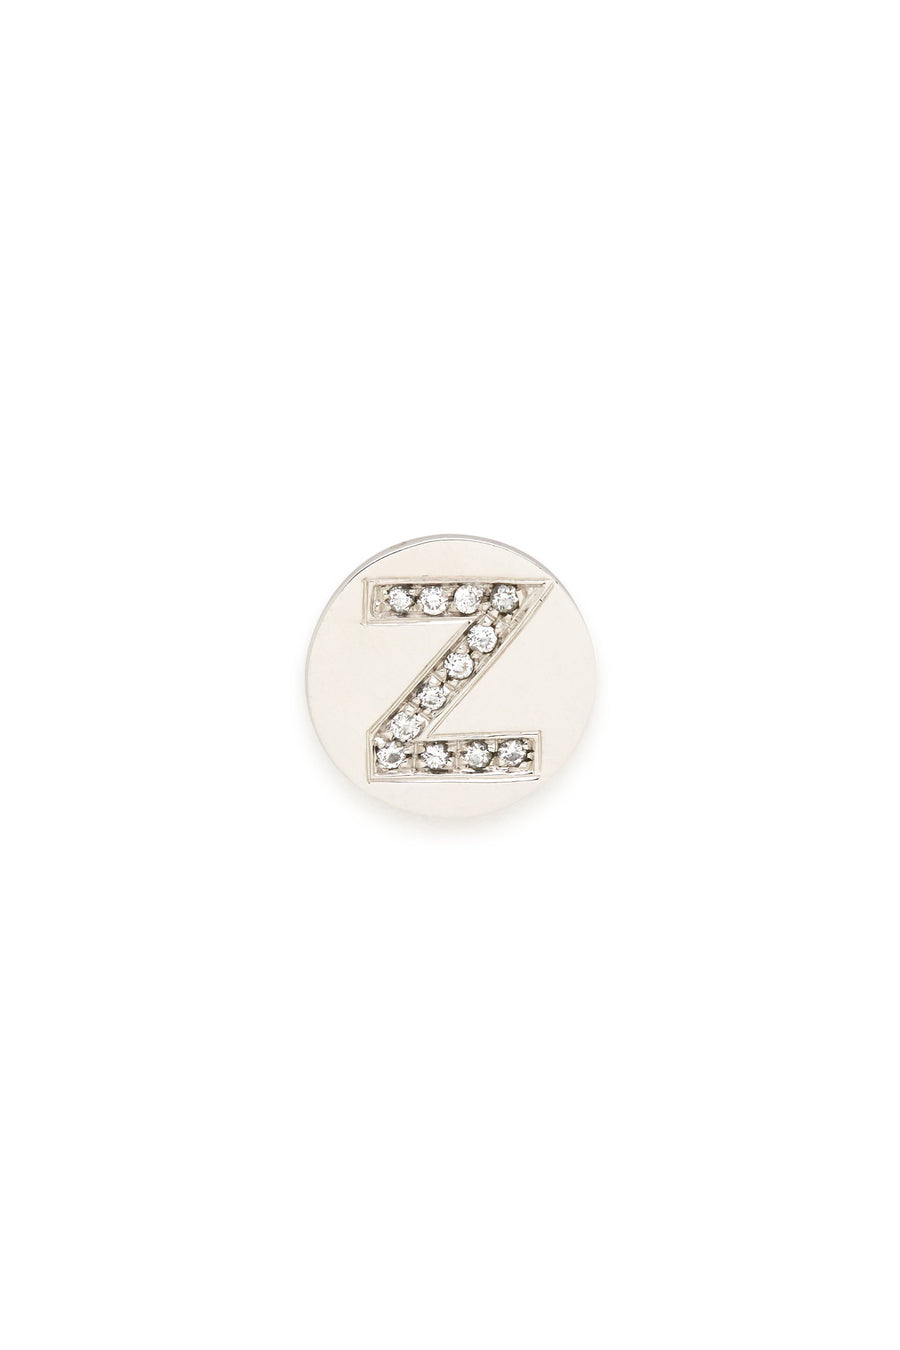 Sterling Silver & Diamond Initial Magnetic Charm - Z